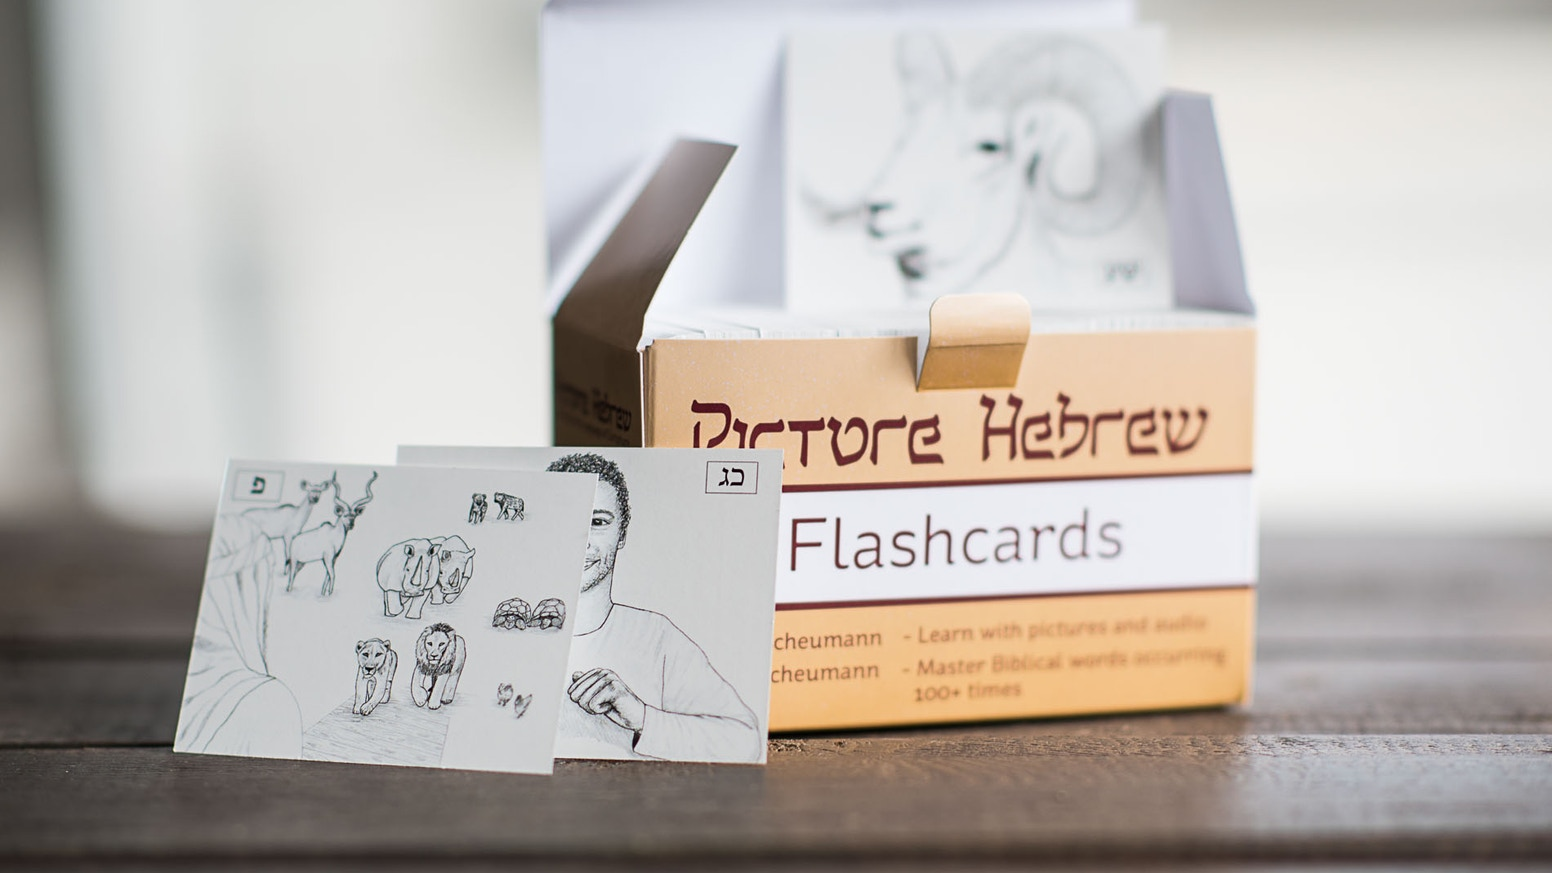 picture hebrew flashcard app by jesse scheumann kickstarter